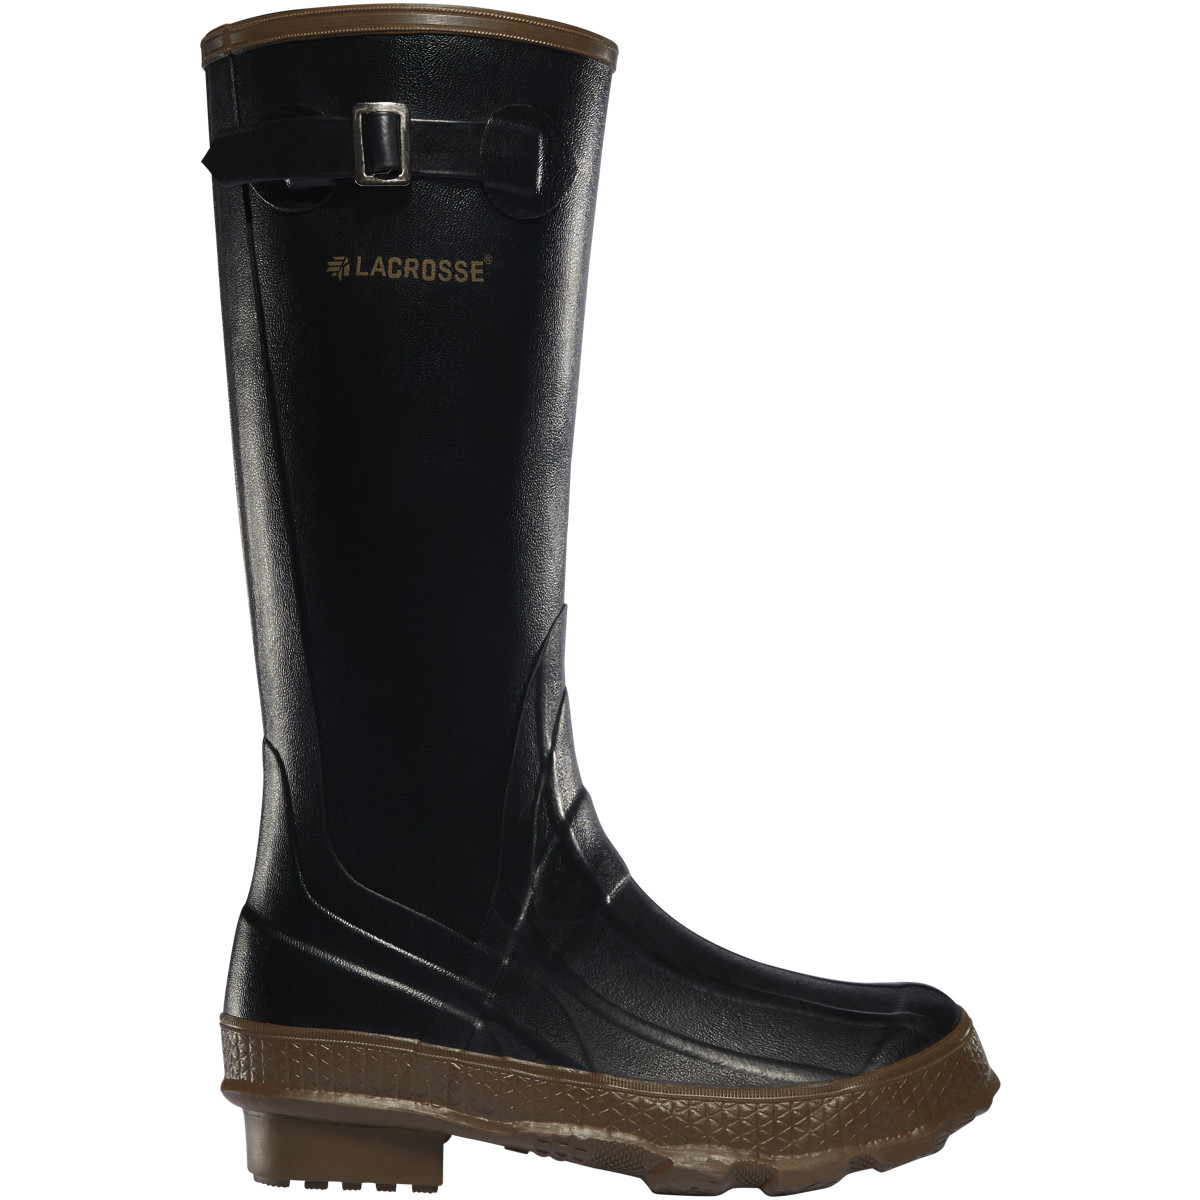 "Lacrosse Women's Grange 14"" Boot - Black/Tan  631129"